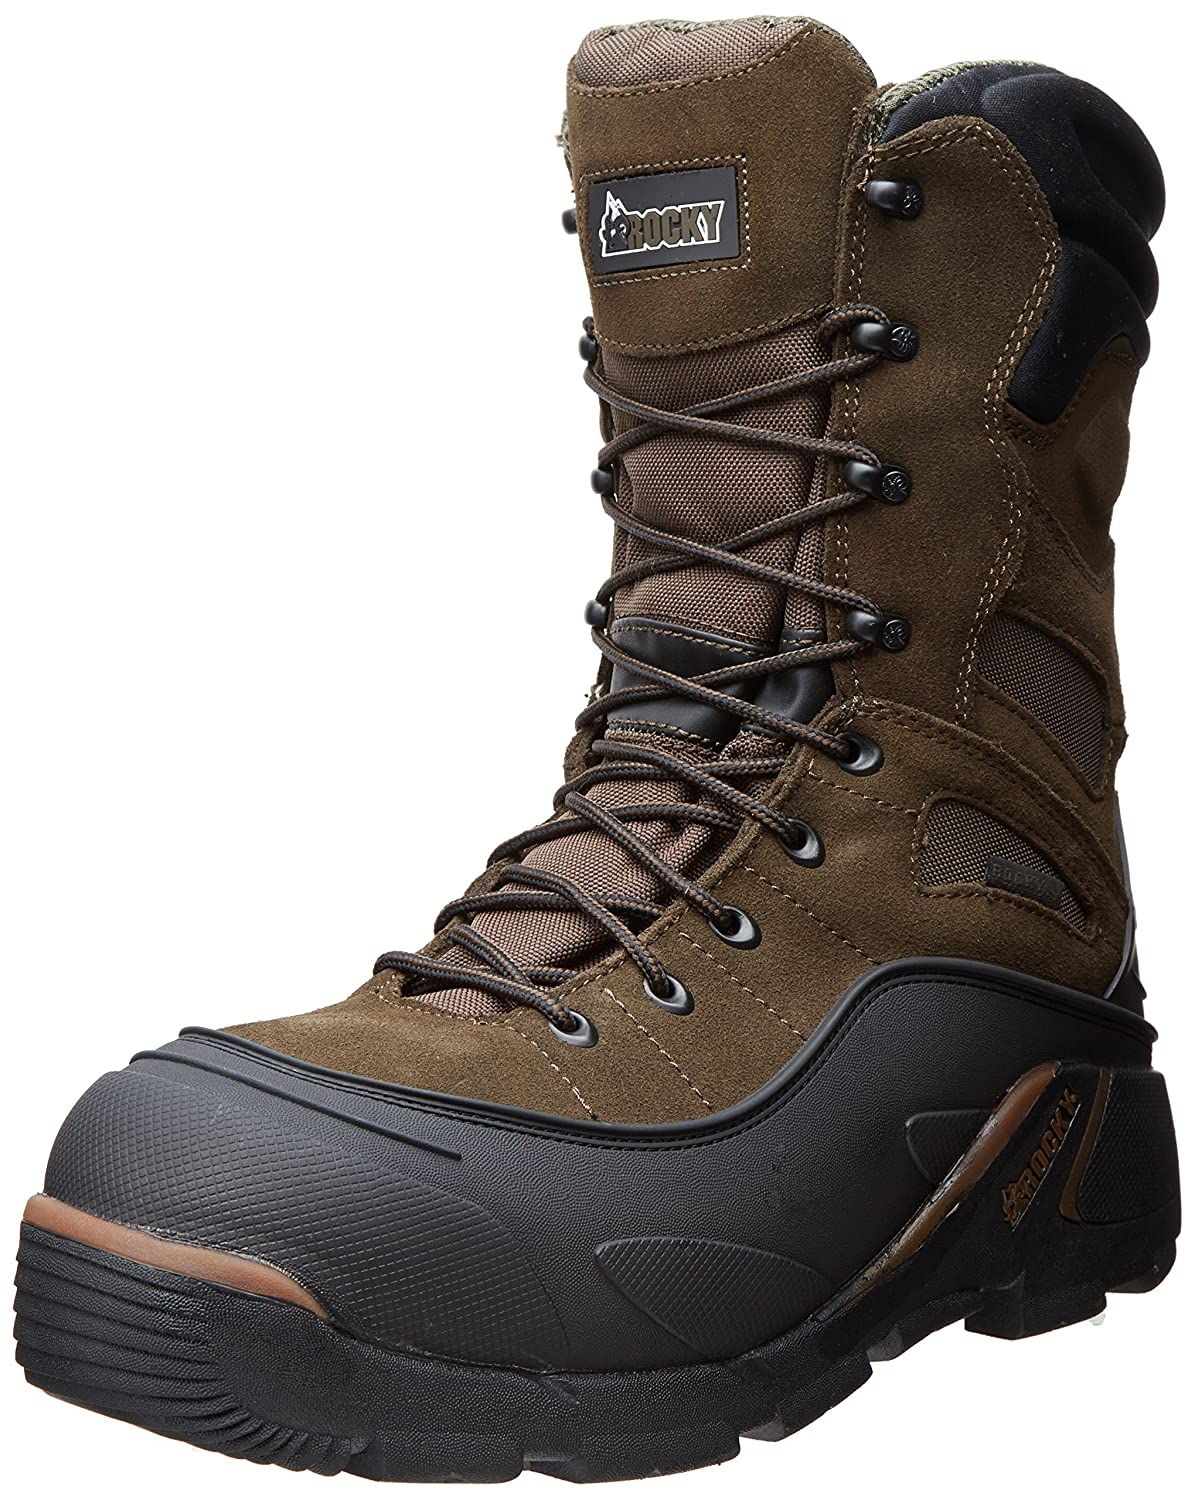 Rocky Men's Blizzard Stalker Pro Mobu Hunting Boot FQ0005454